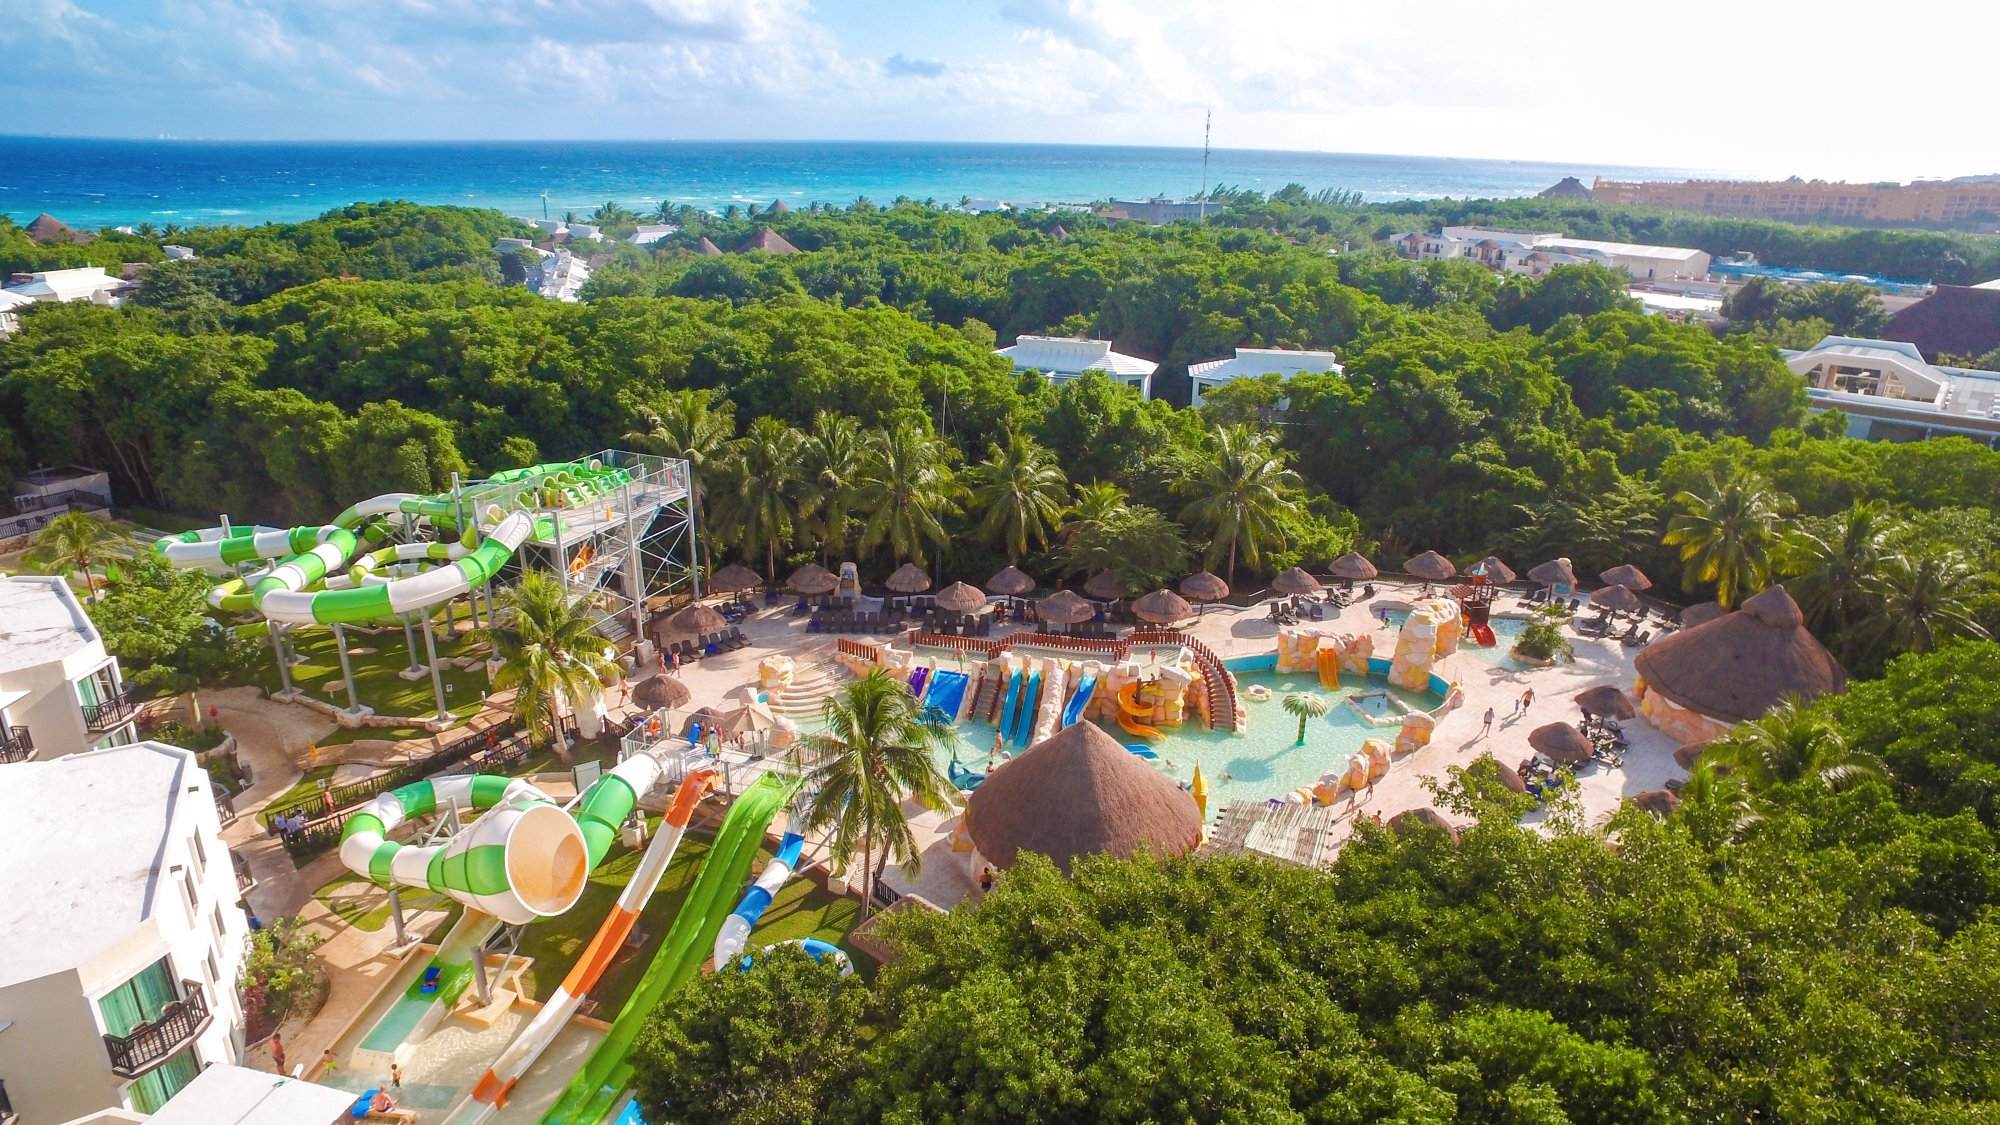 Spring Break in Mexico with Kids travel guide featured by top US family blogger, Marcie in Mommyland: Sandos Caracol Eco Resort is a kid-friendly Mexico Resort perfect for Spring Break